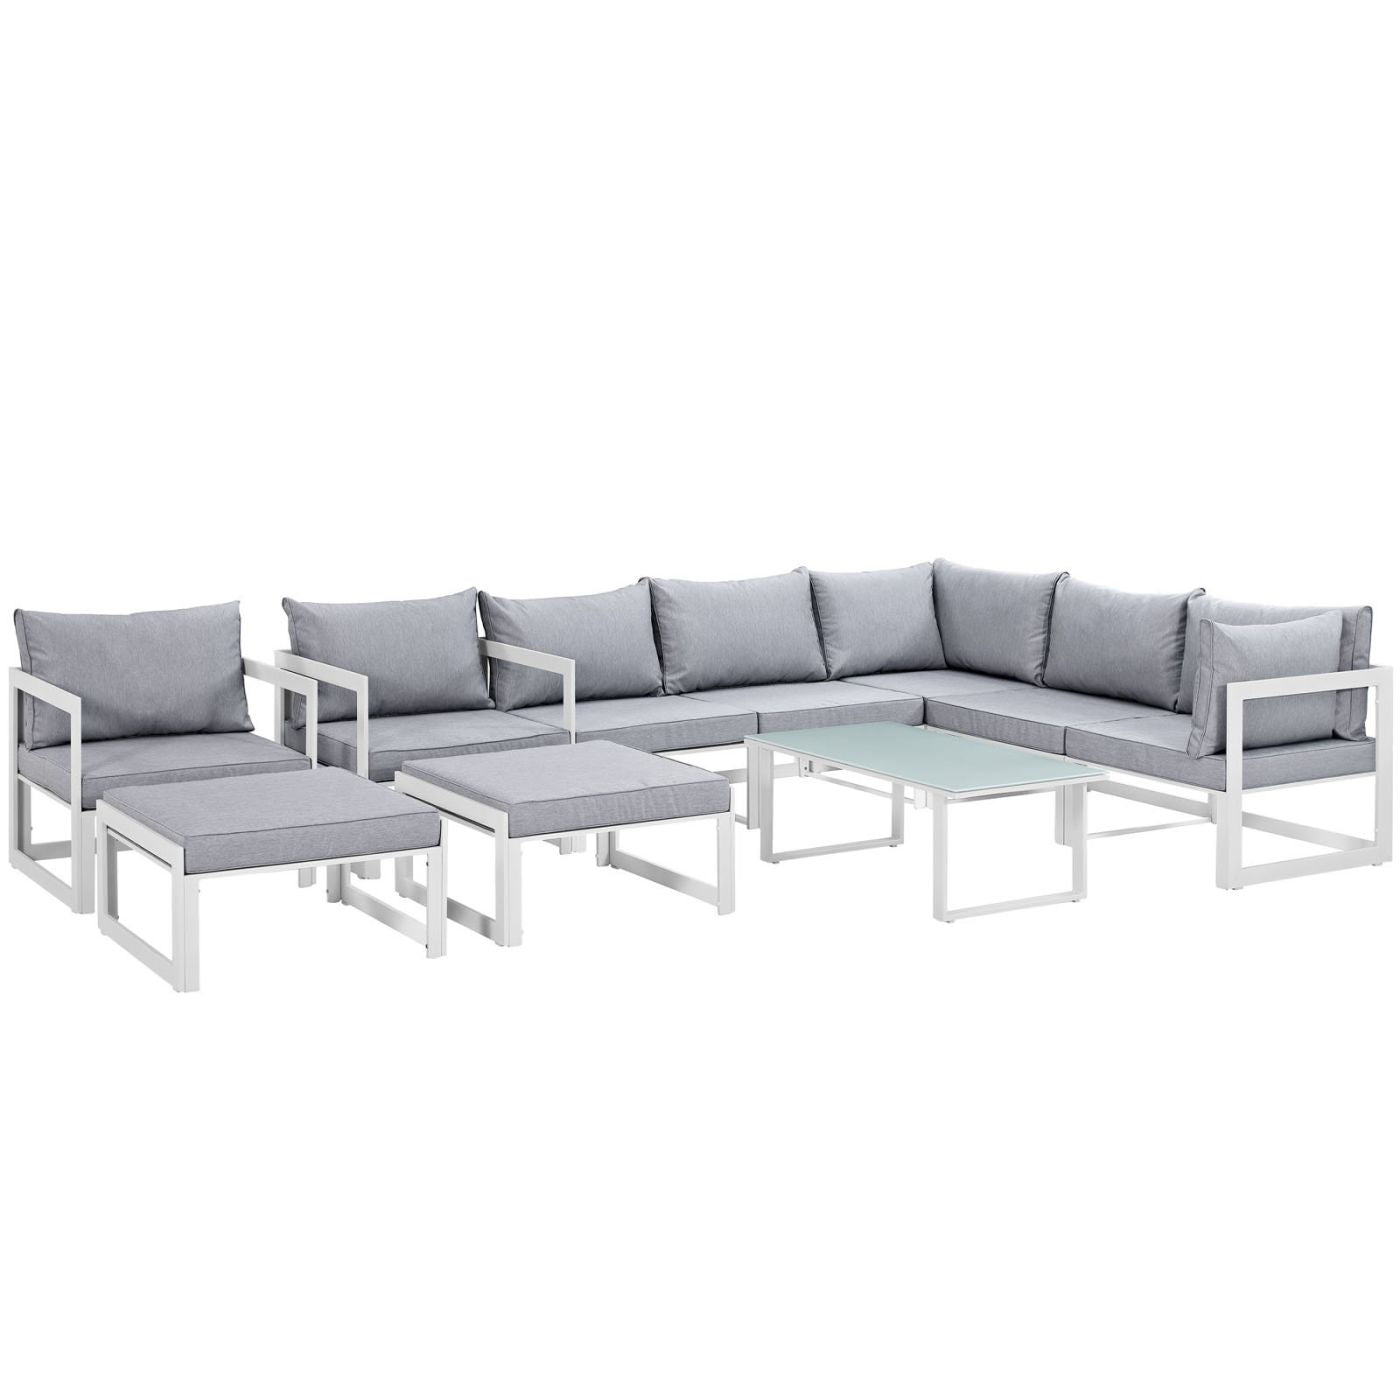 Modway Outdoor Patio Sets on sale. EEI-1720-WHI-GRY-SET Fortuna 10 Piece  Outdoor Patio Sectional Sofa Set only Only $2,109.80 at Contemporary ...